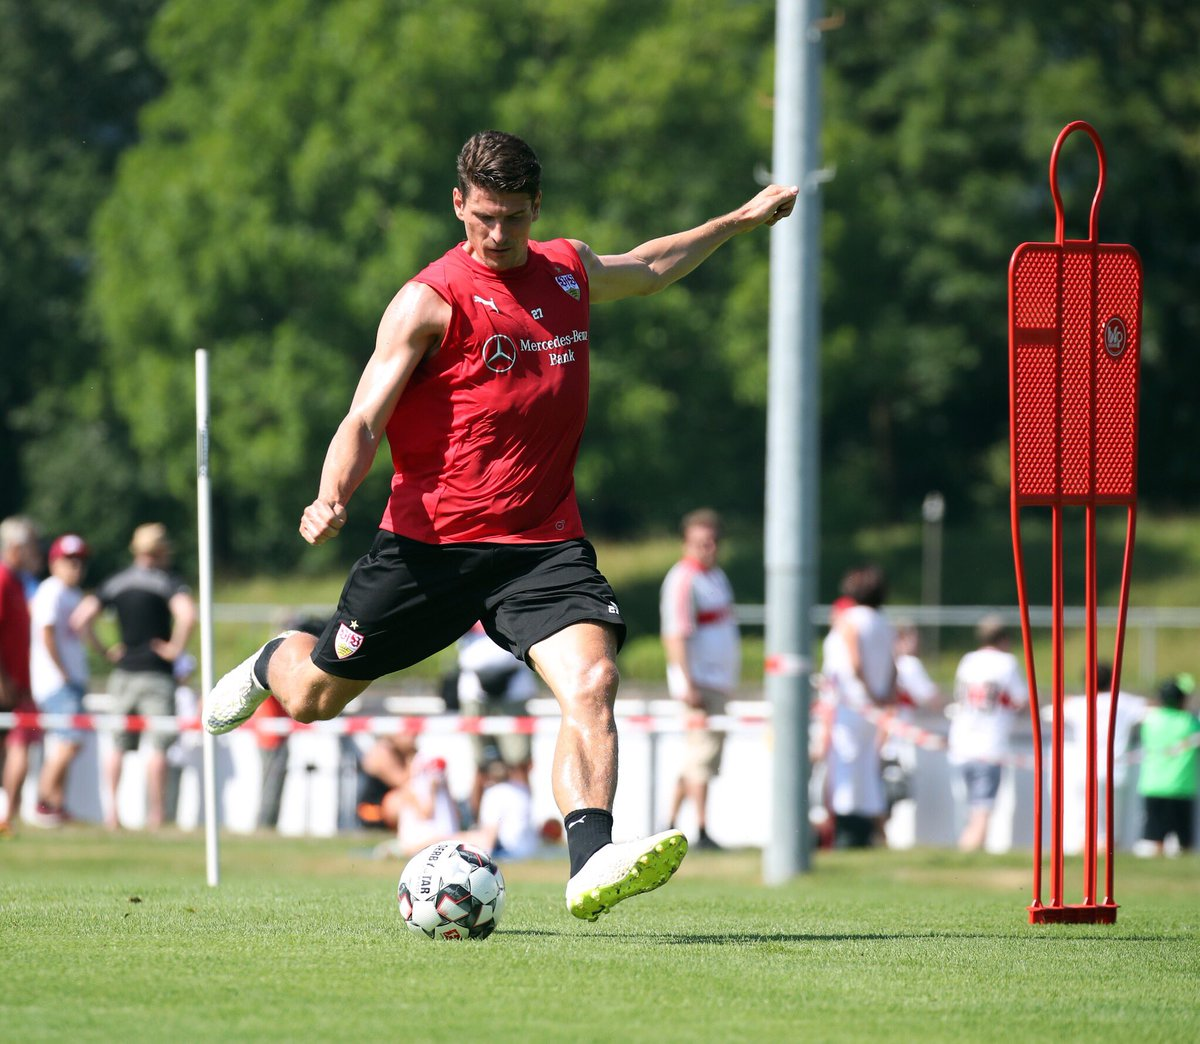 Let's go!! #training #happy #0711 #vfb https://t.co/axcrwj5iO0